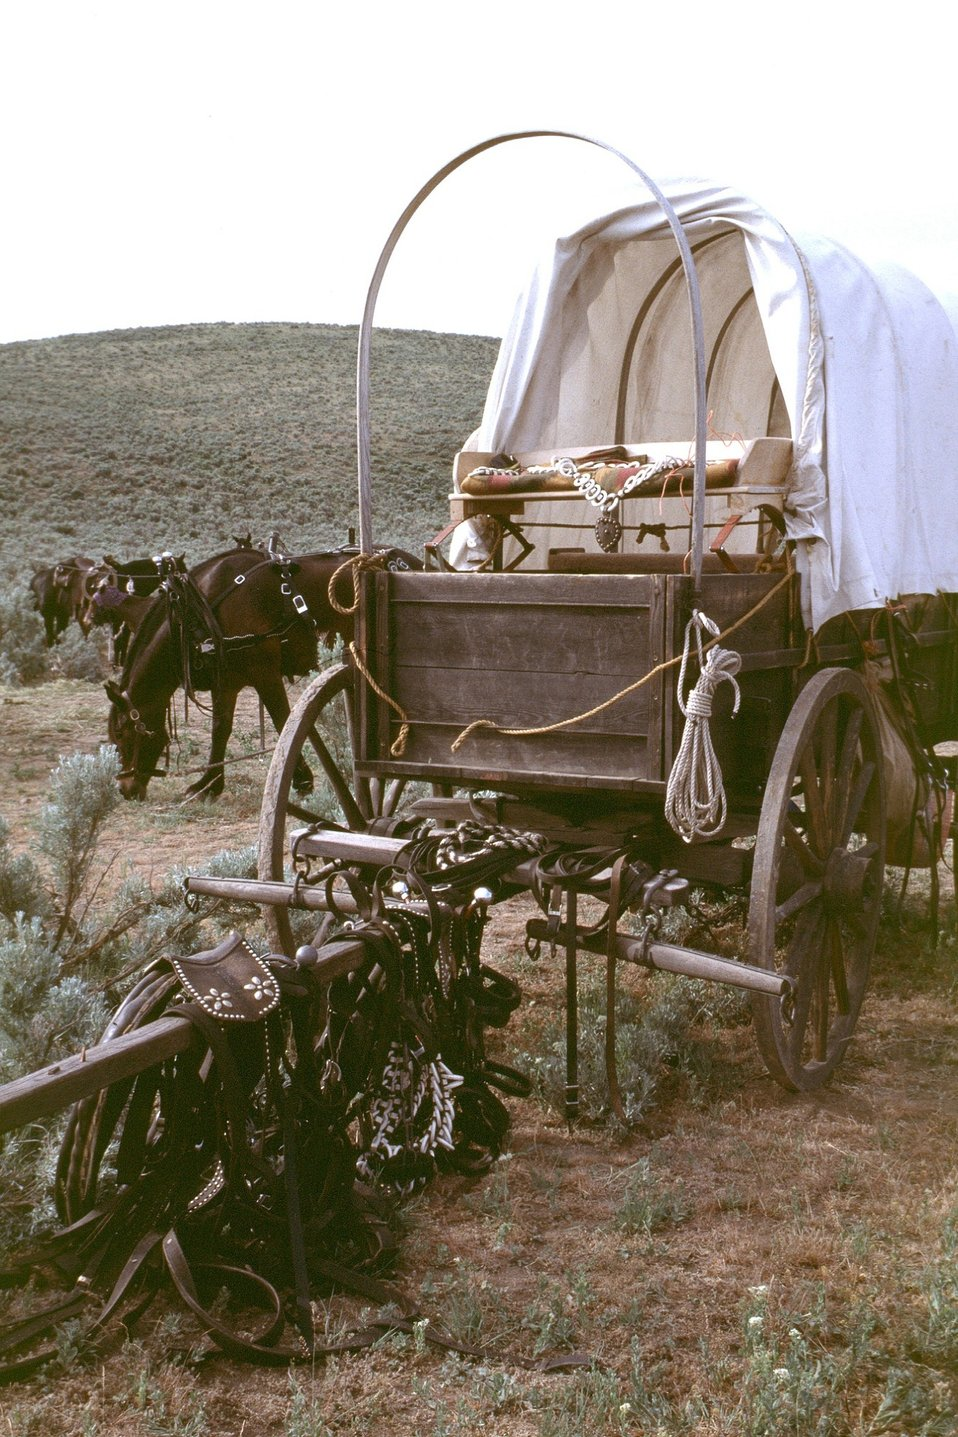 NHOTIC 10th Anniversary, wagon train reenactment. Covered wagon and grazing horses on the Oregon Trail.